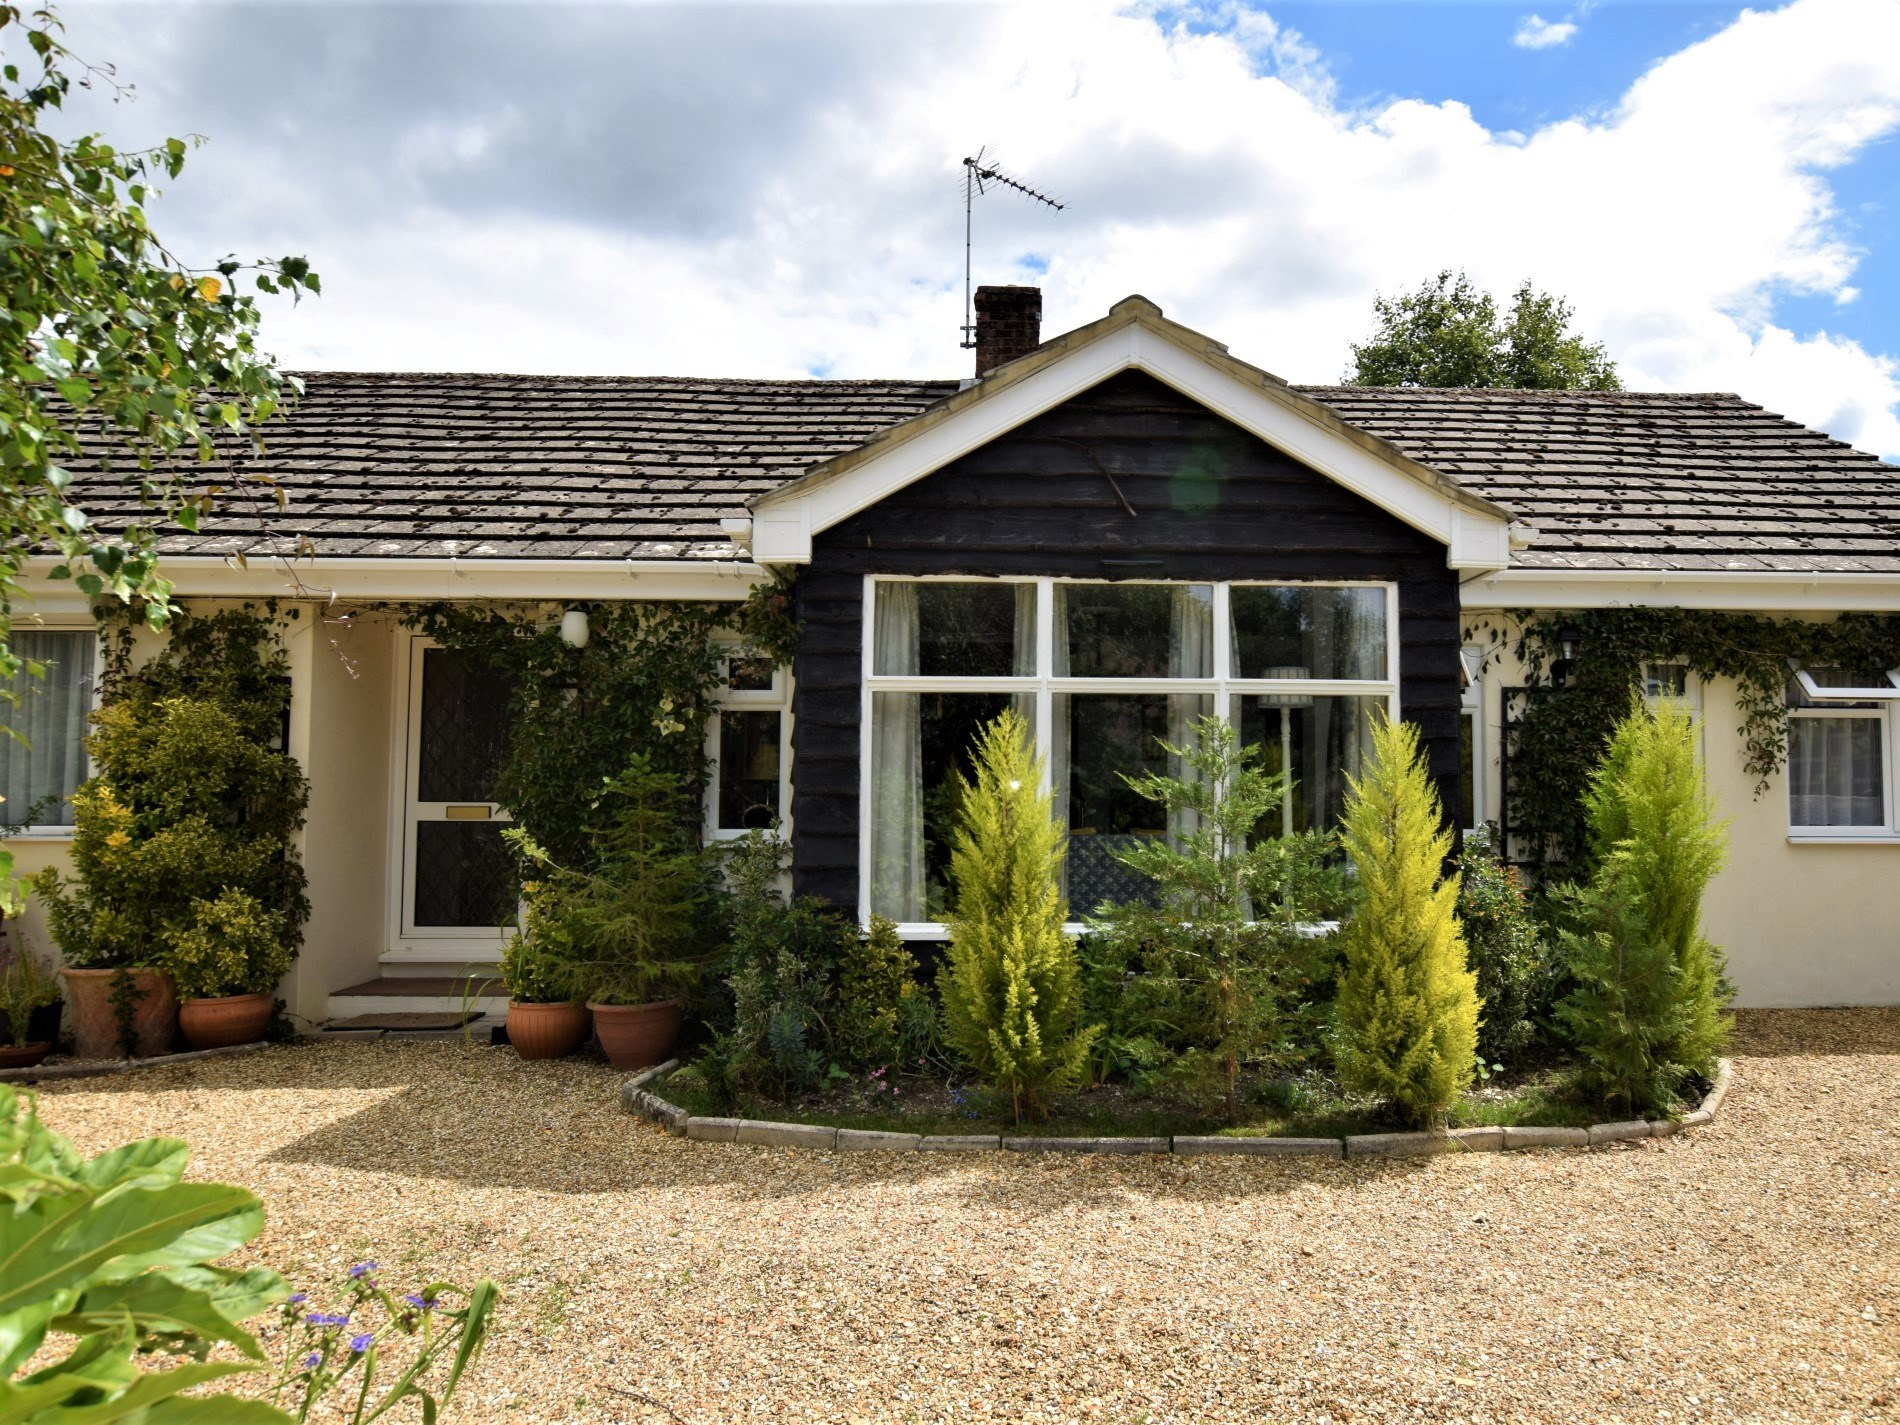 2 Bedroom Cottage in Fordingbridge, South of England